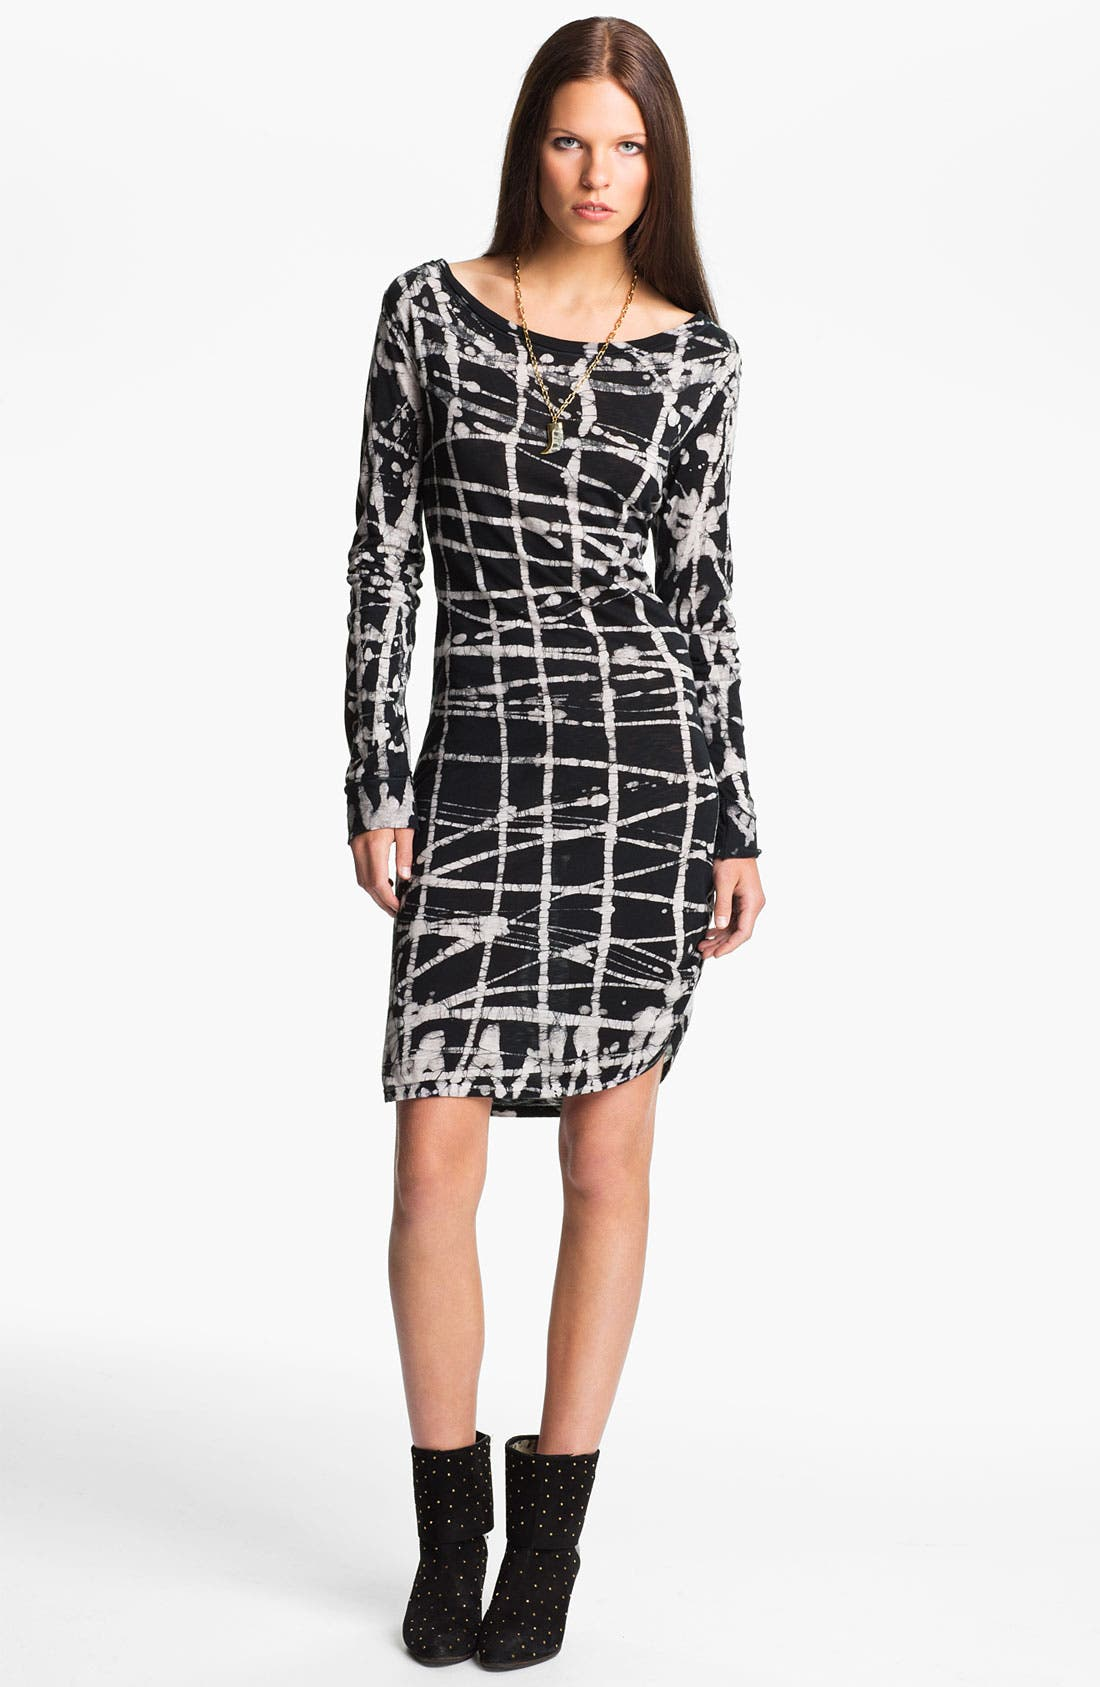 Main Image - Kelly Wearstler 'Batik Cage' Jersey Dress